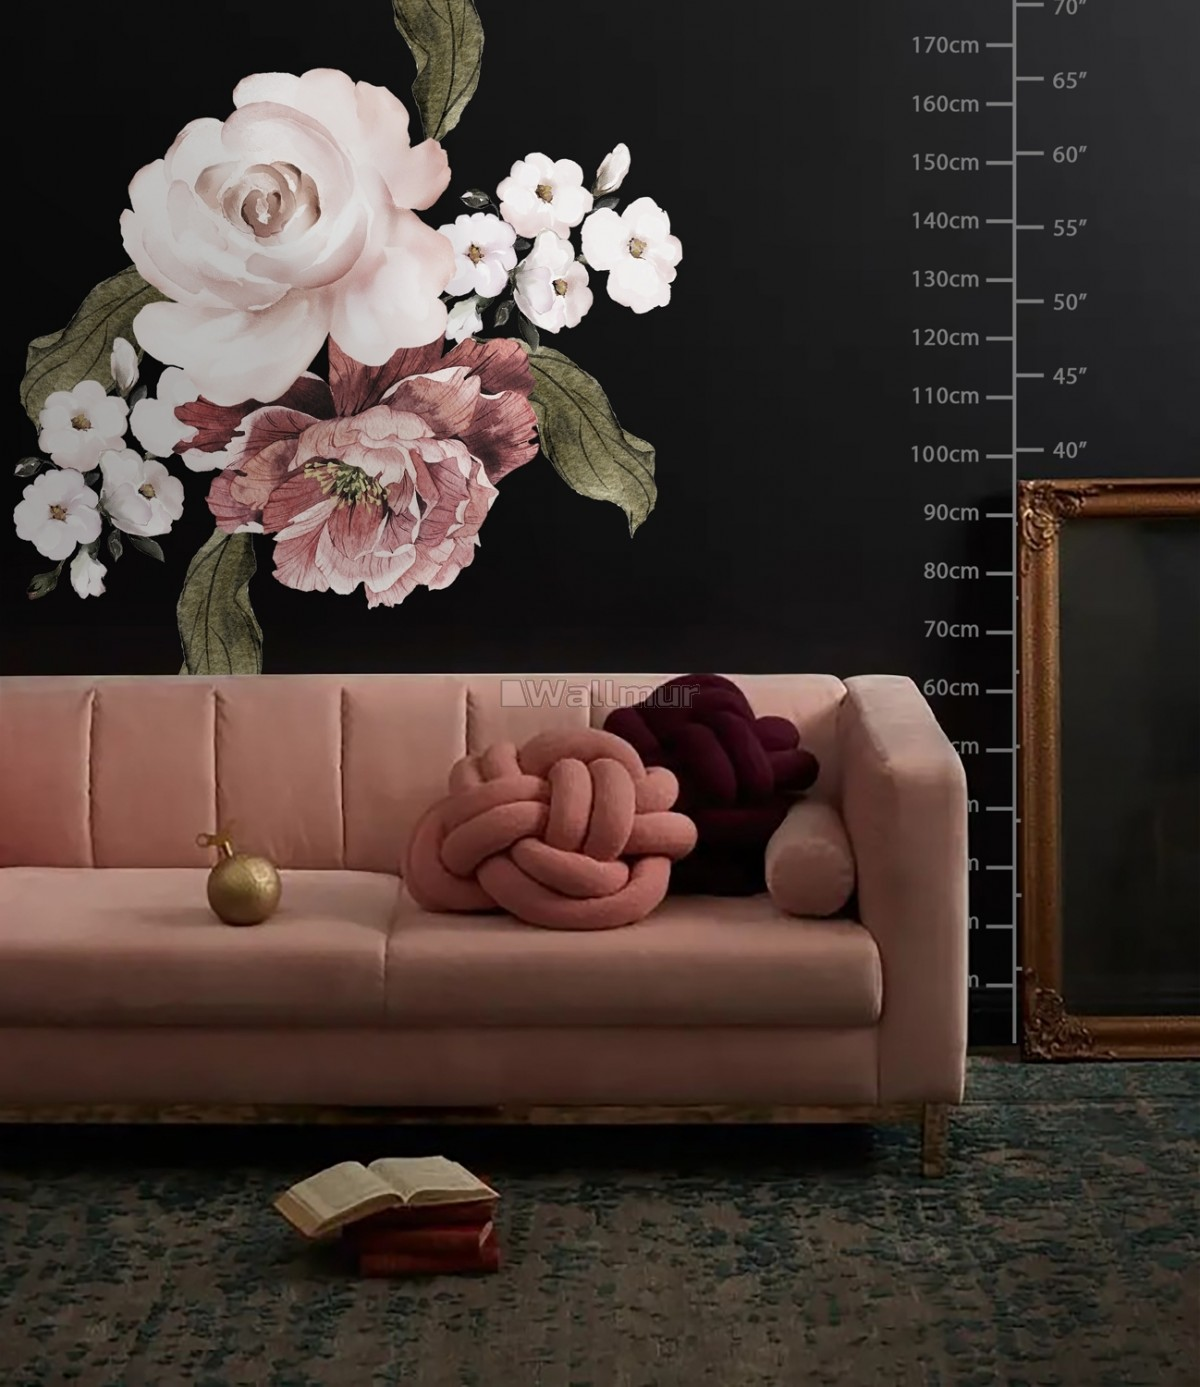 Pink Rose Red Peony Floral Bouqet Wall Decal Sticker